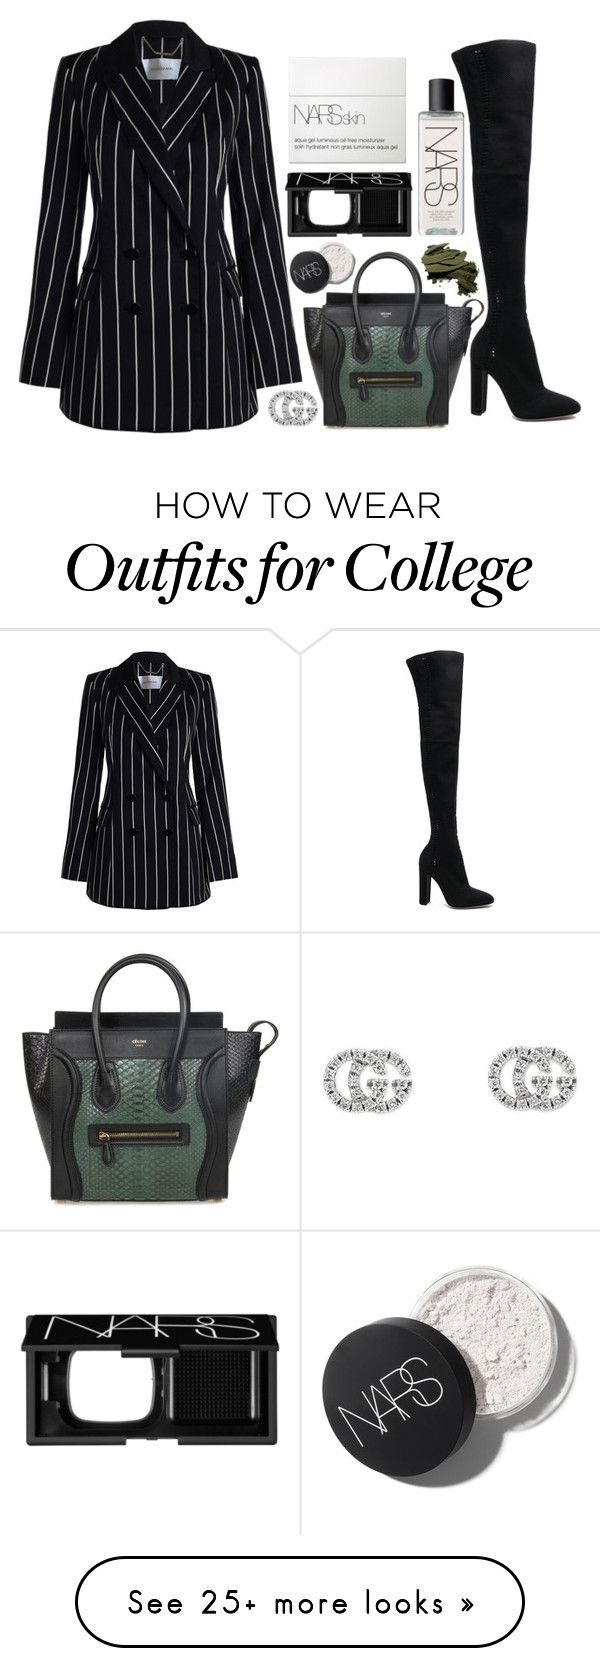 """Untitled #320"" by zada on Polyvore featuring NARS Cosmetics, Gucci, Zimmermann, Gianvito Rossi, CÉLINE and Bobbi Brown Cosmetics"